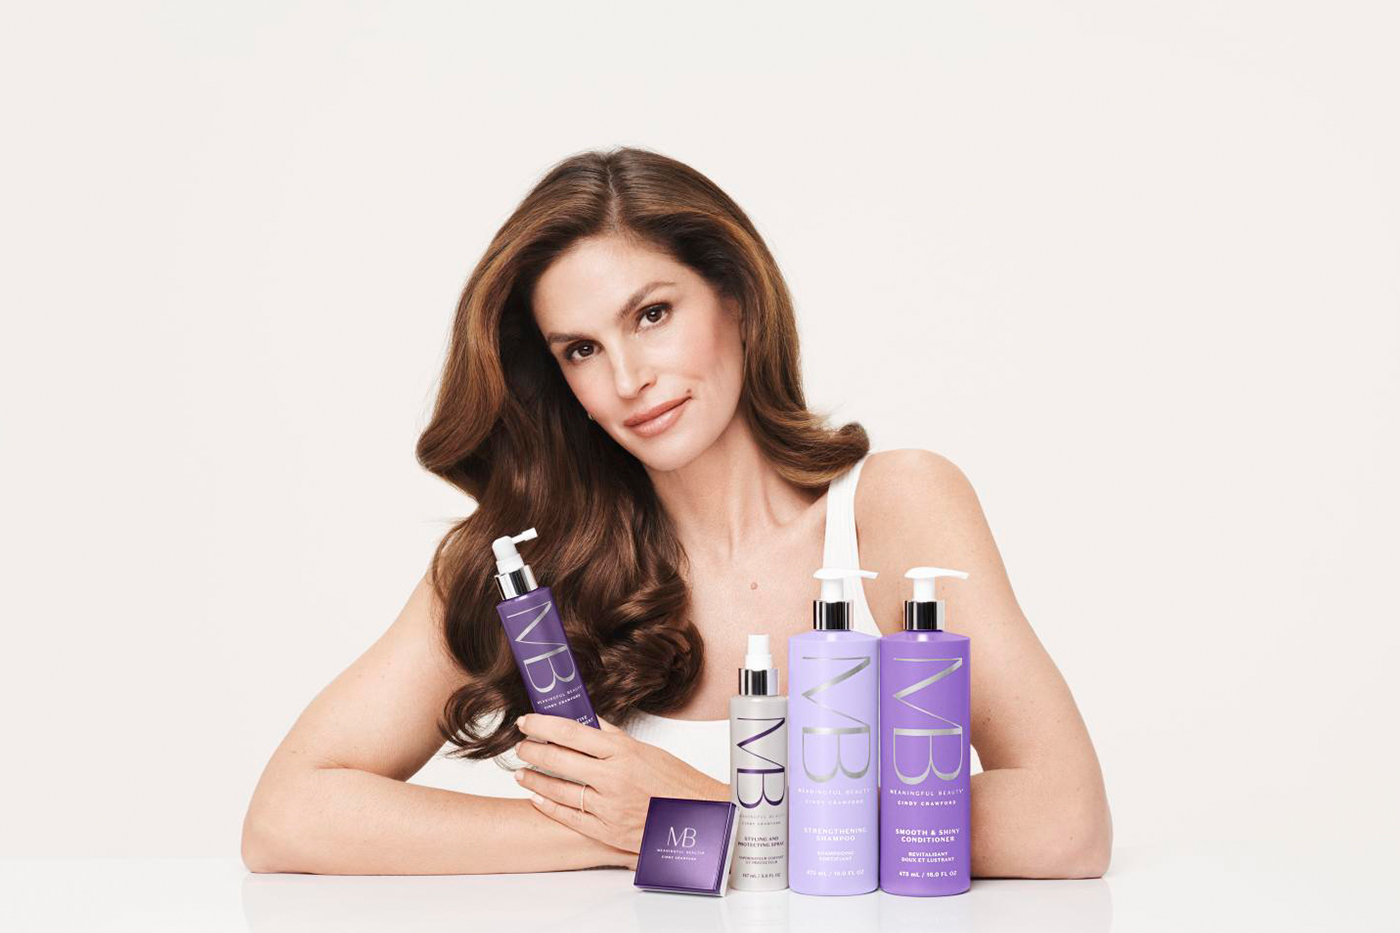 Cindy Crawford's Meaningful Beauty brand expands to hair care